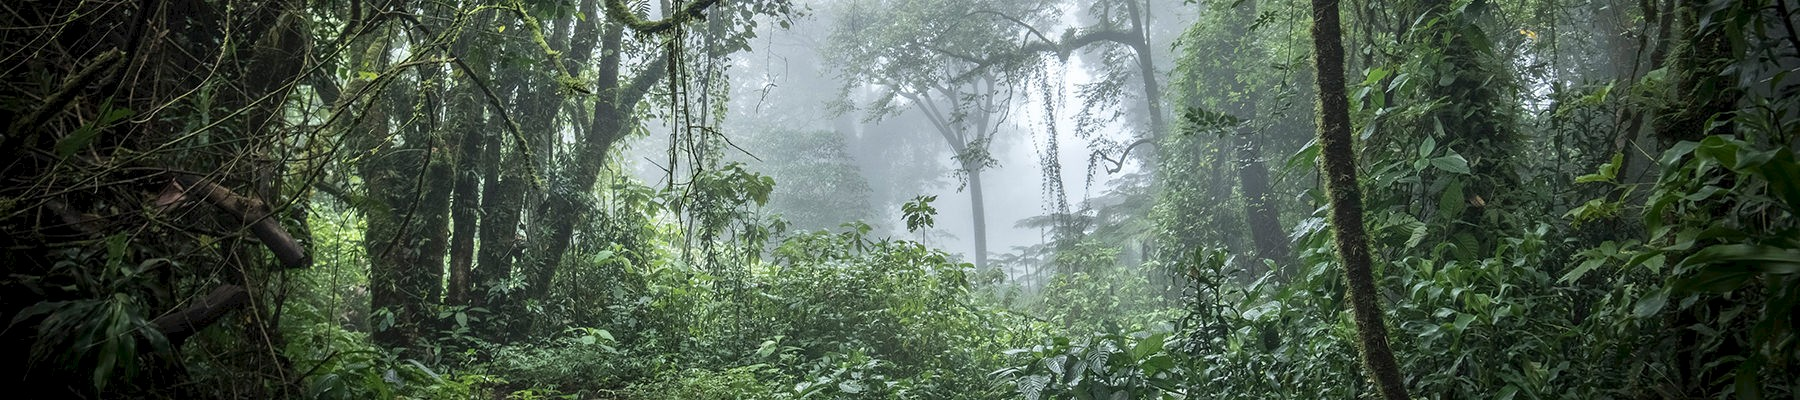 Forest at the base of Mount Cameroon © A. Walmsley / TRAFFIC